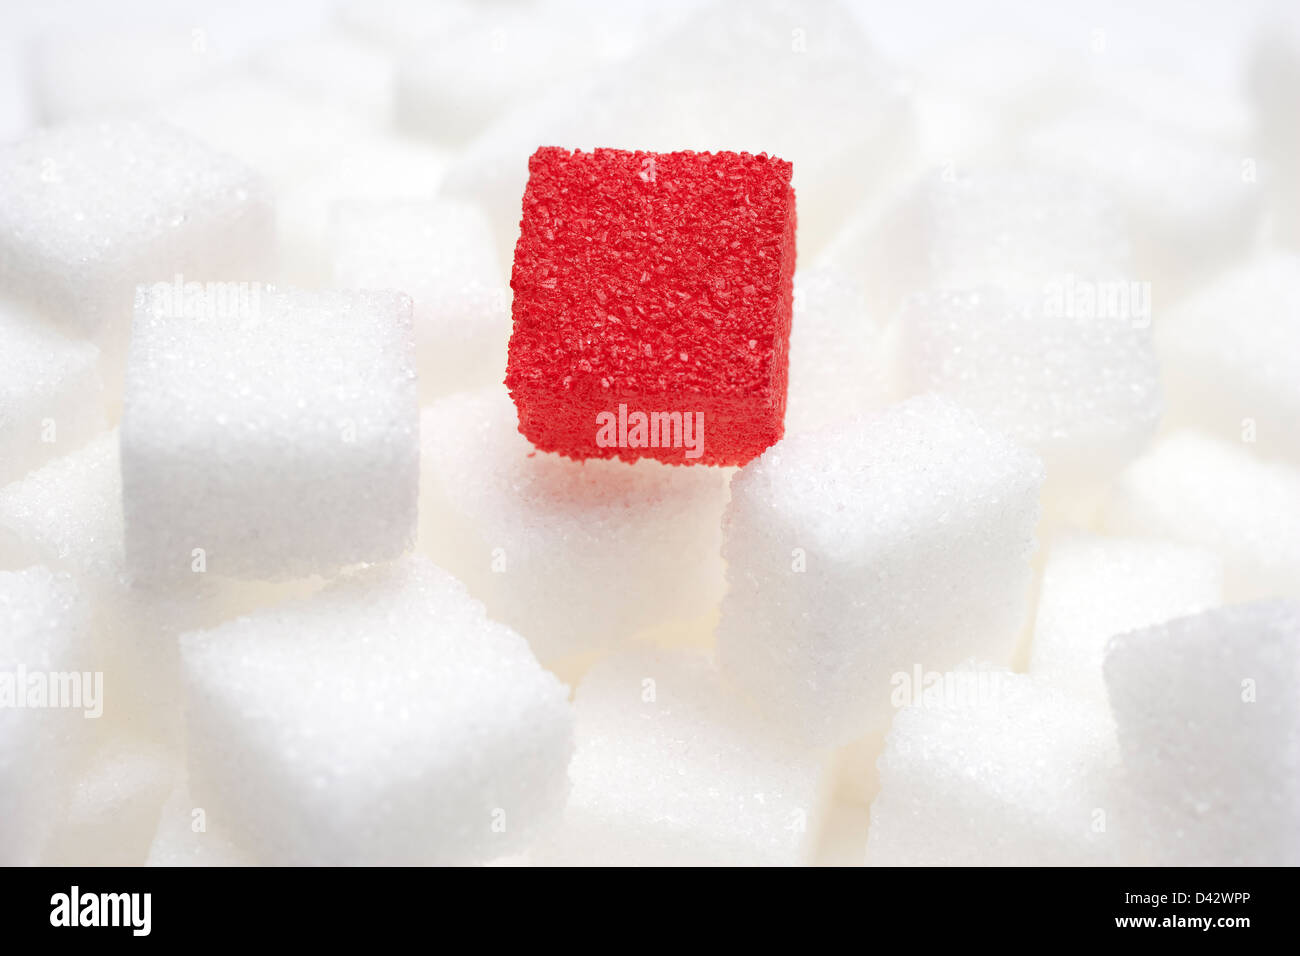 Blood Sugar Stock Photos Blood Sugar Stock Images Alamy